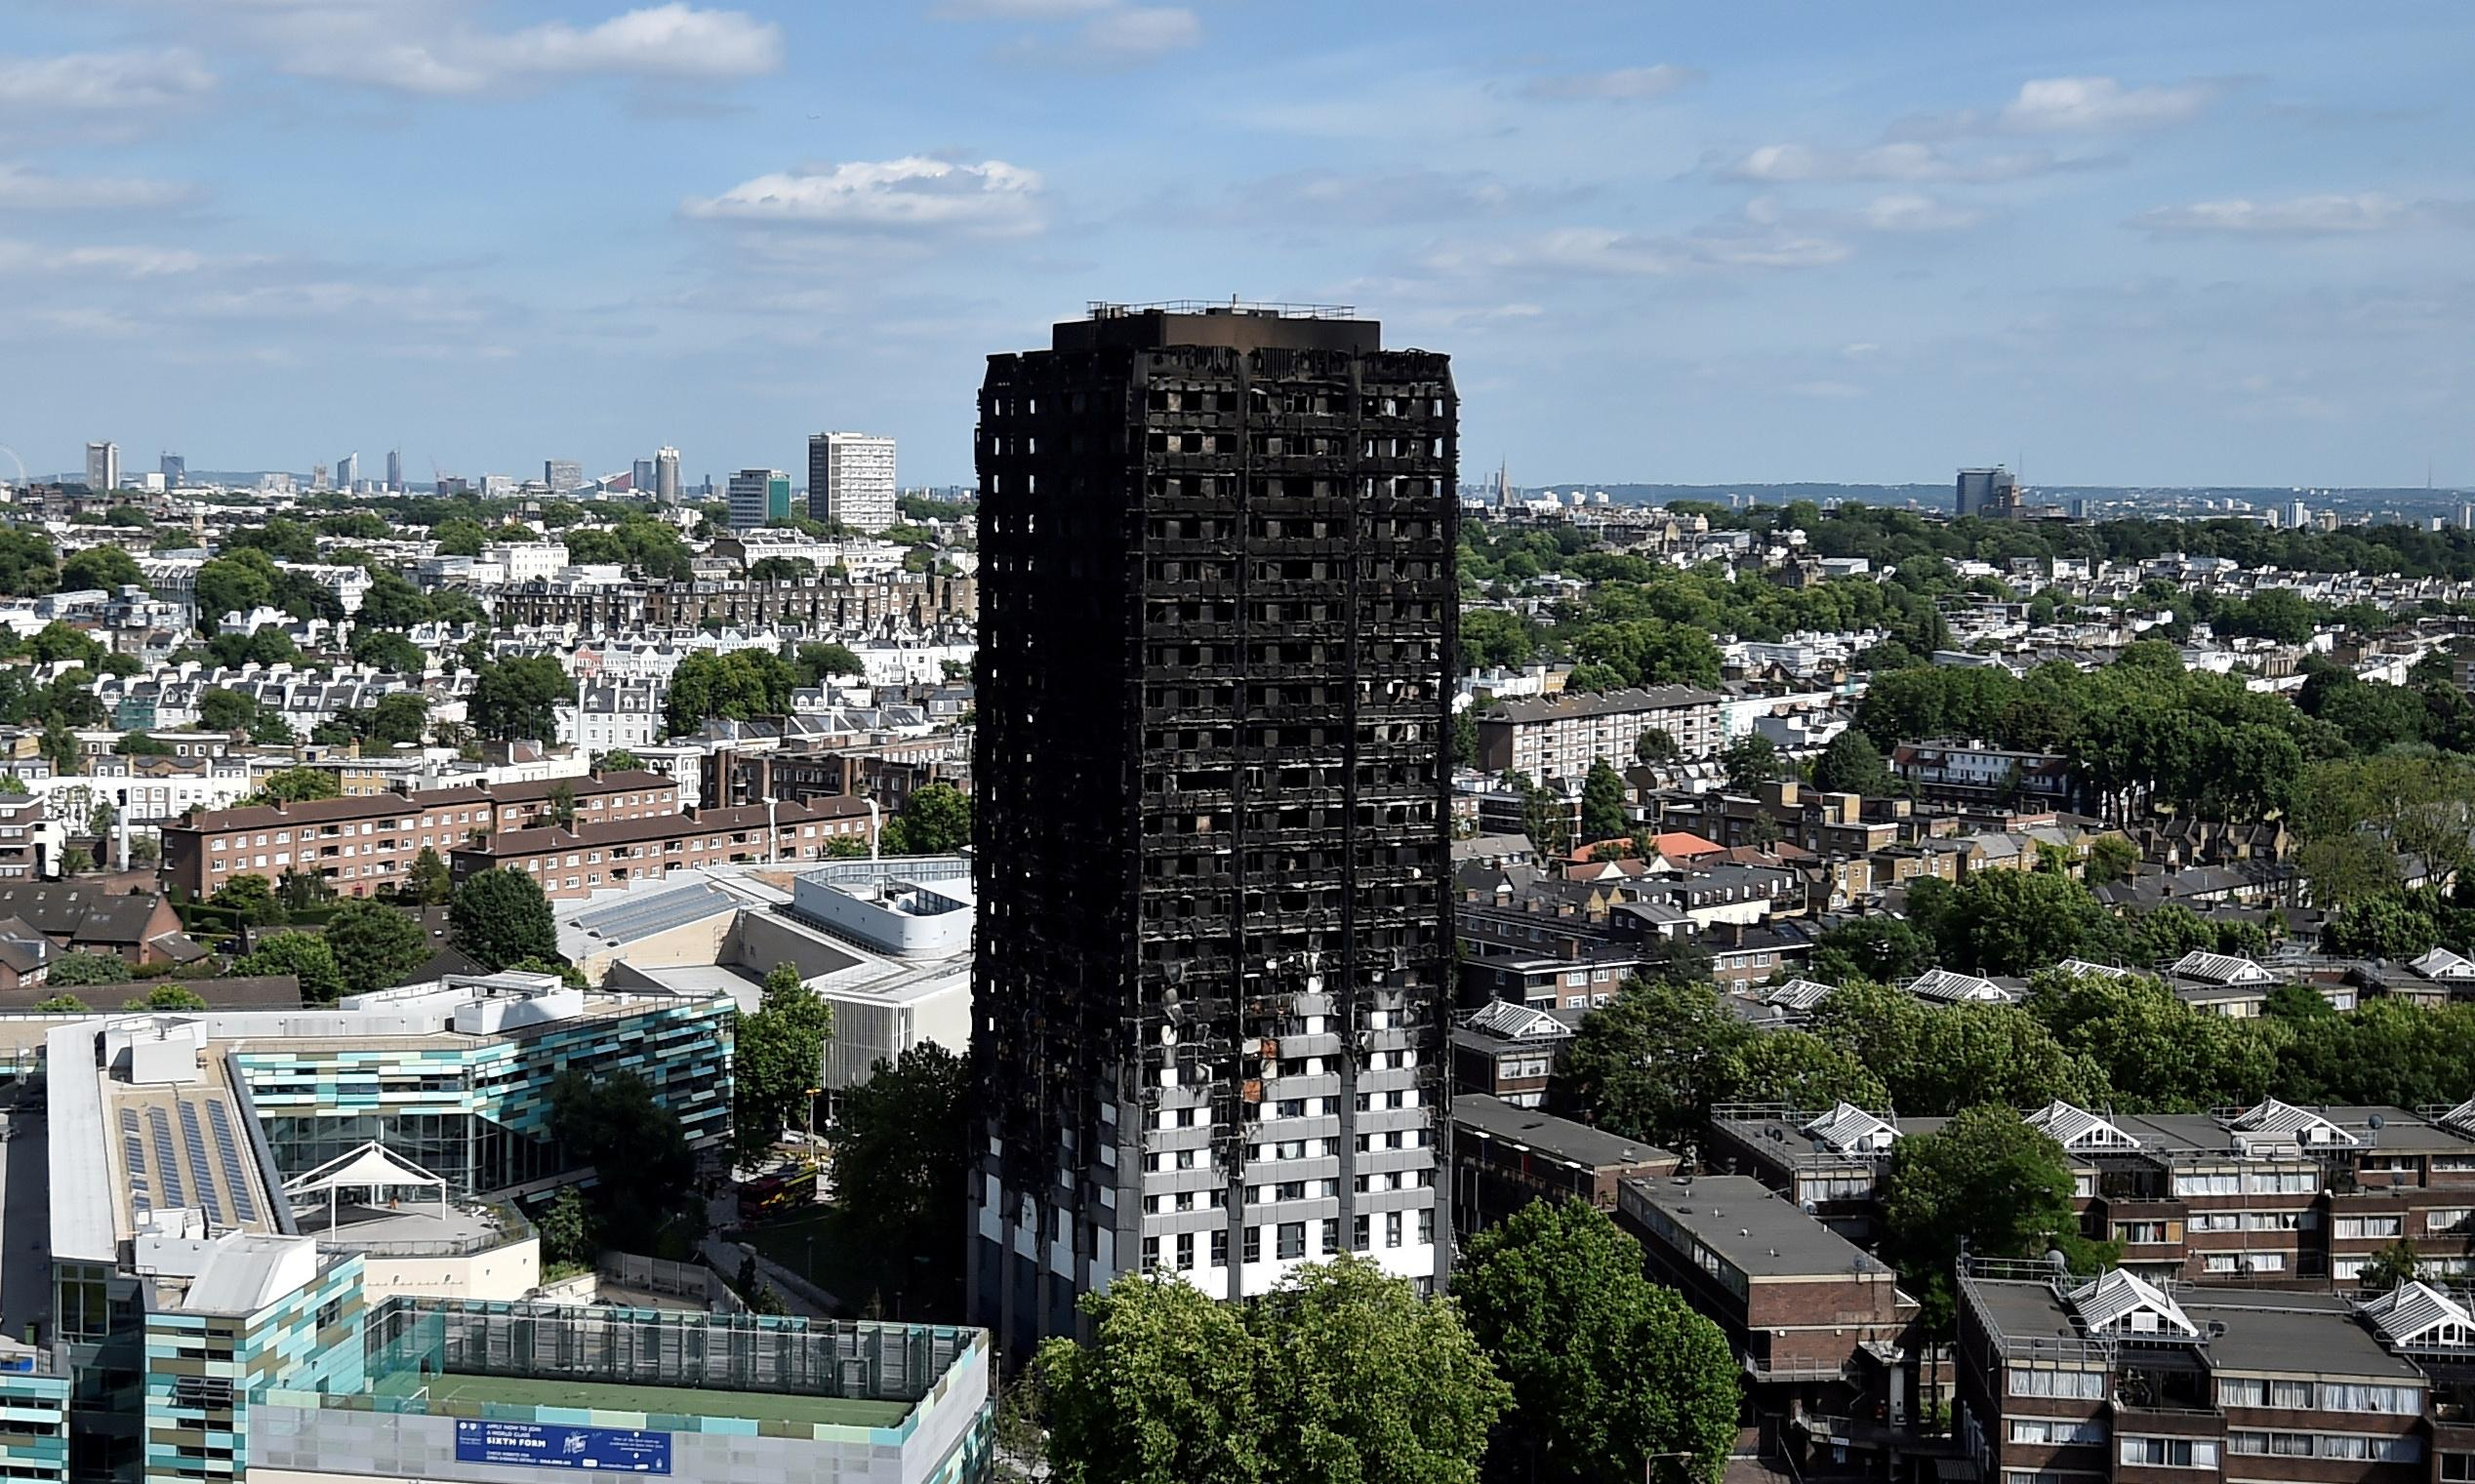 Too little has been done since the Grenfell Tower fire